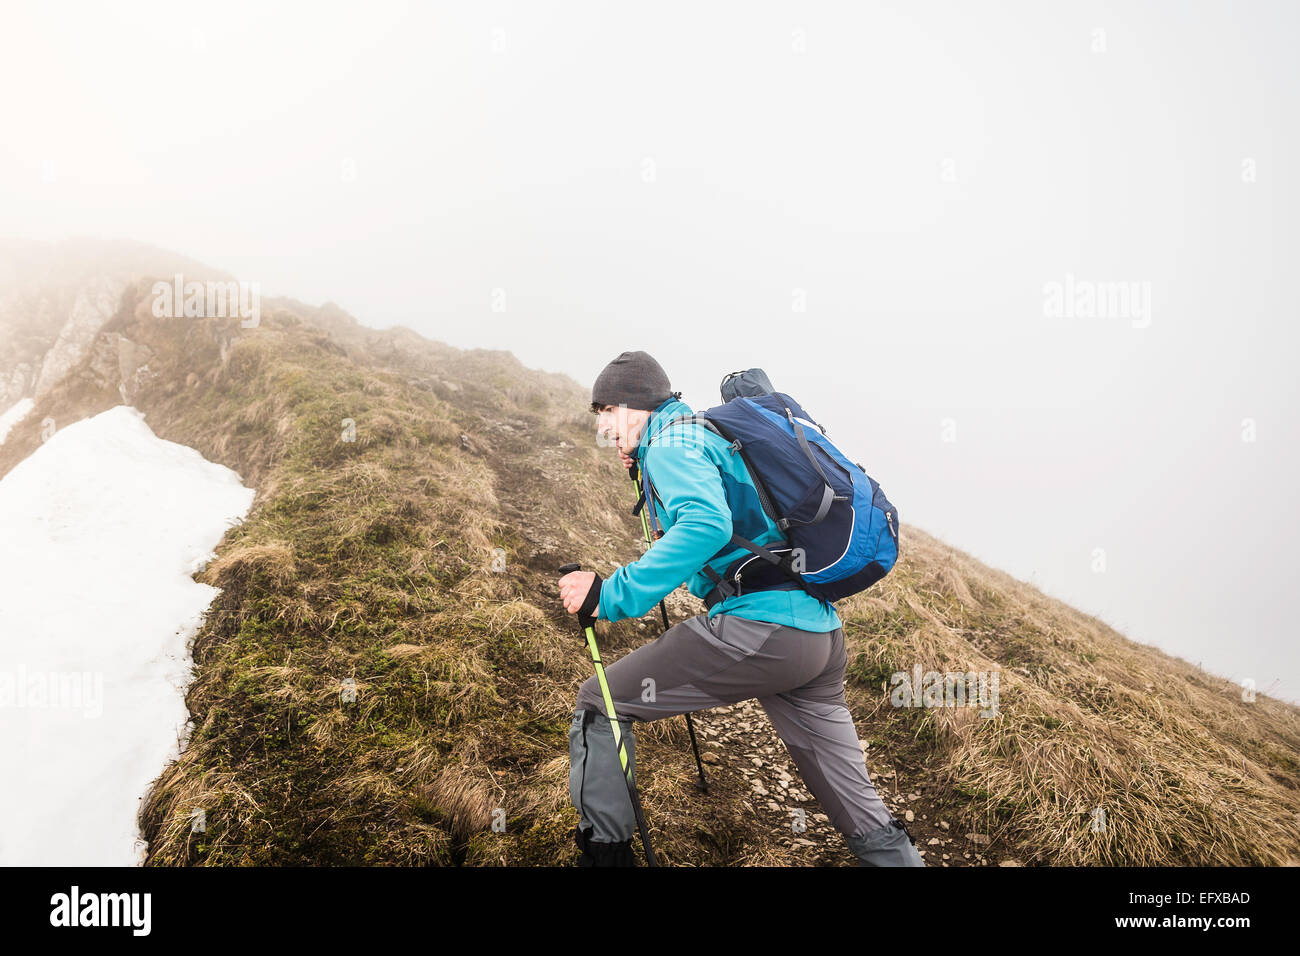 Young man mountain trekking in snow and mist, Bavarian Alps, Oberstdorf, Bavaria, Germany - Stock Image